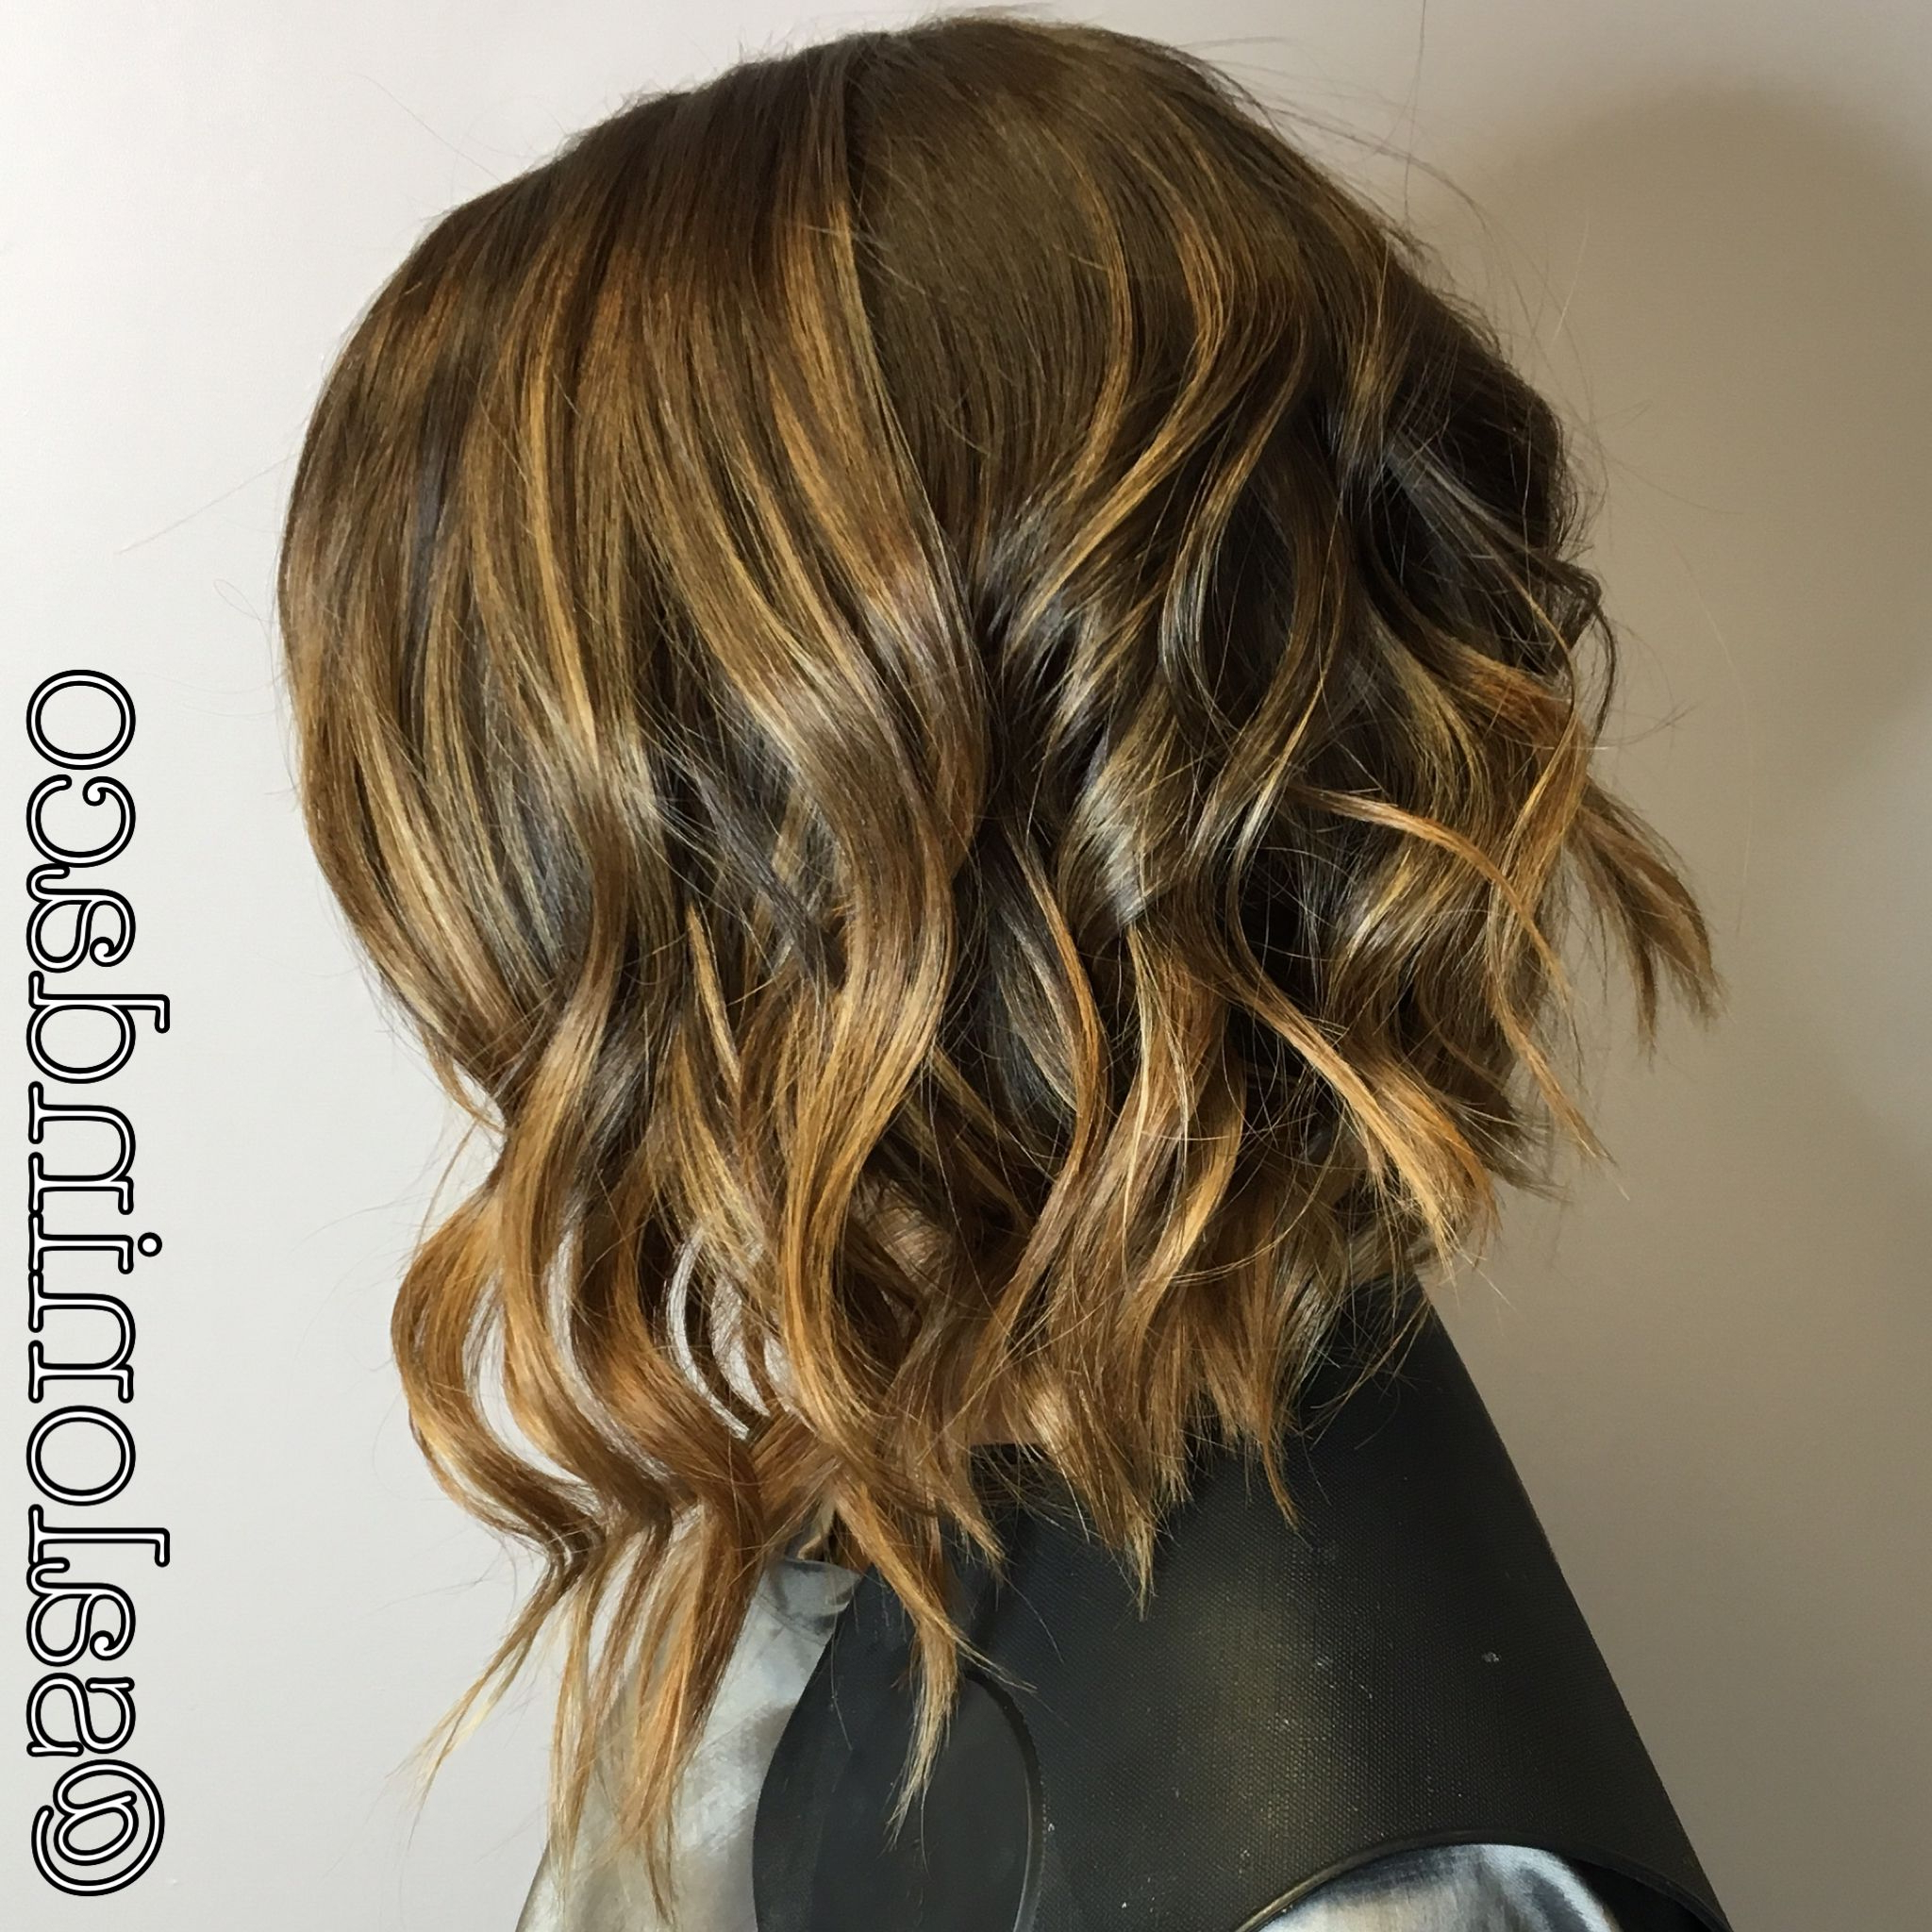 Swing Bob Cut Balayage Ombré Caramel Highlights With Chocolate Brown Intended For Newest Point Cut Bob Hairstyles With Caramel Balayage (View 2 of 20)